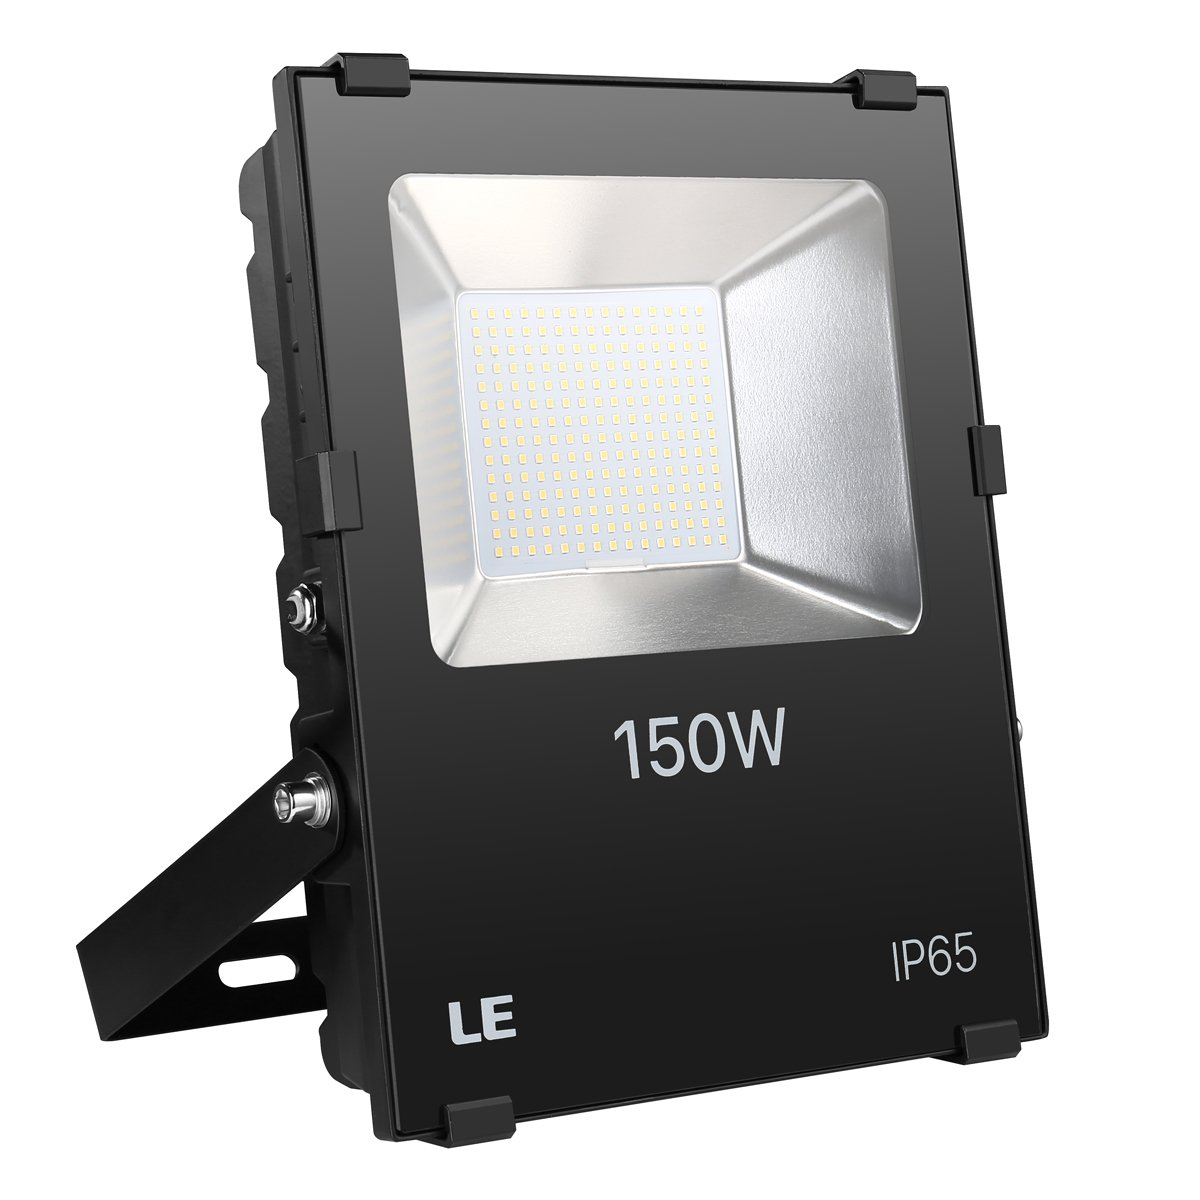 LE 150W 16500lm Super Bright Outdoor LED Flood Lights, Daylight White, 5000K, Security Lights, Floodlight (ETL Listed) by Lighting EVER